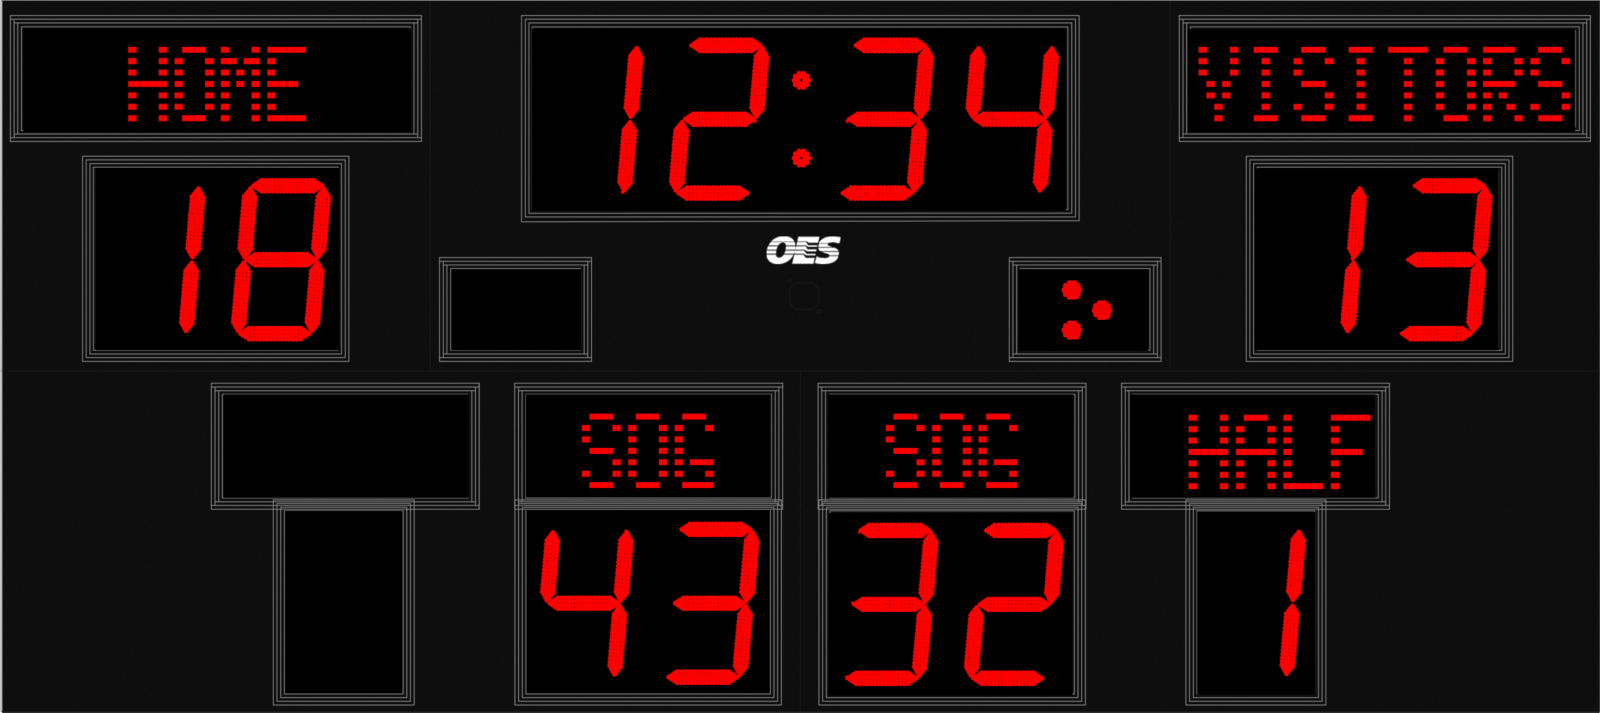 black scoreboard with red text